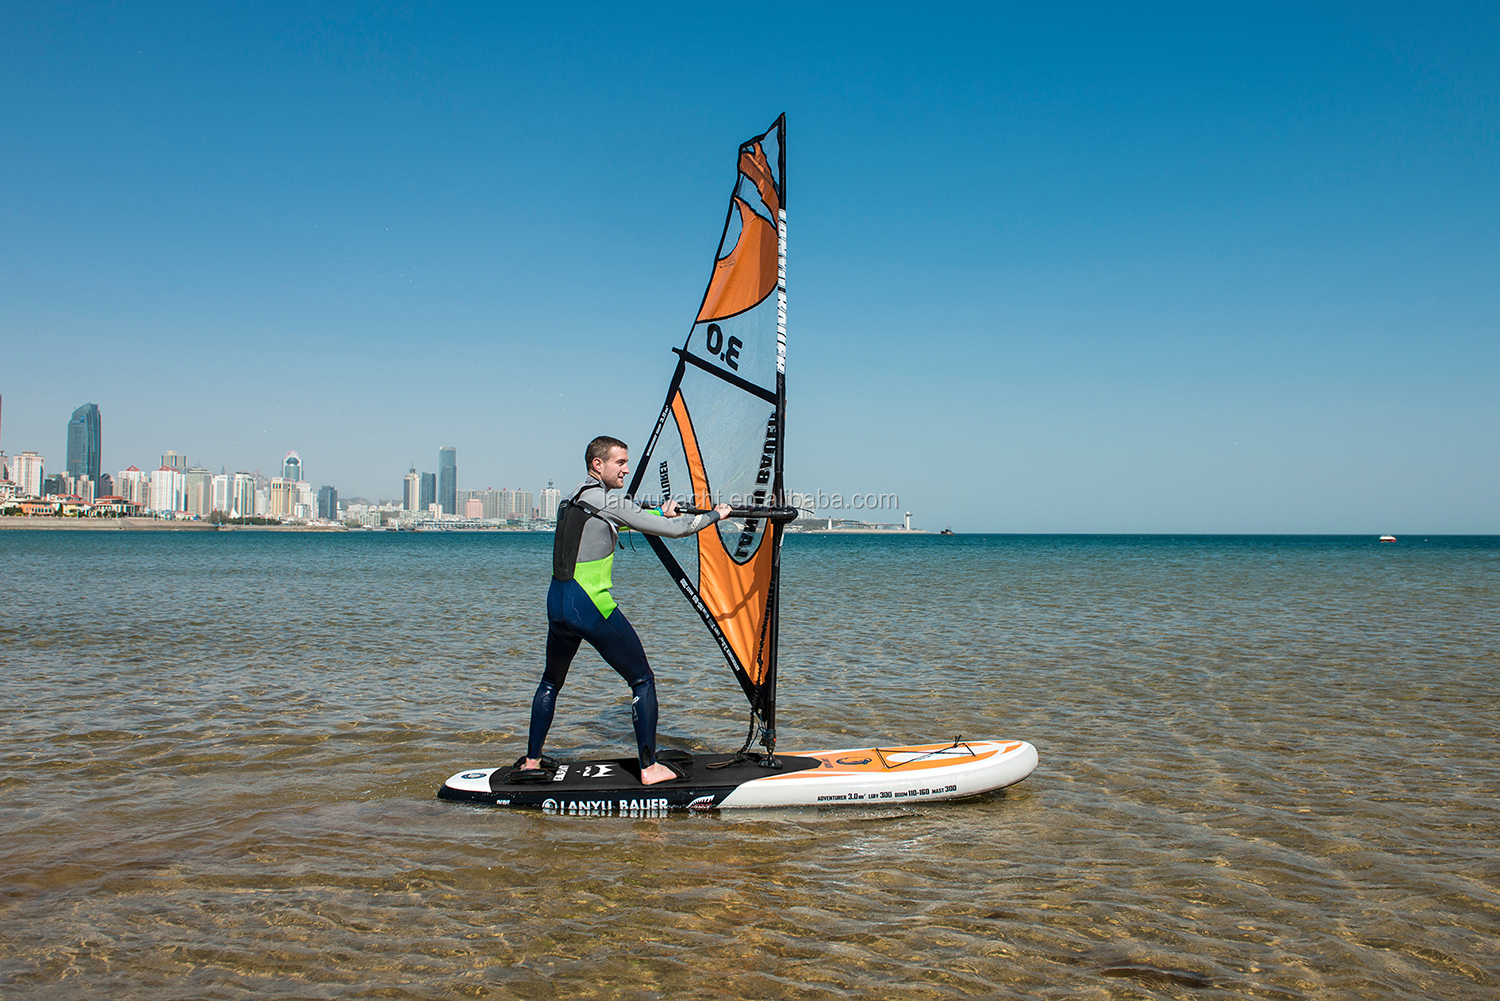 Sup Windsurf Board Inflatable Paddle Board View Sup Windsurf Board Inflatable Paddle Board Lanyu Bauer Product Details From Qingdao Lanyu Yacht Co Ltd On Alibaba Com